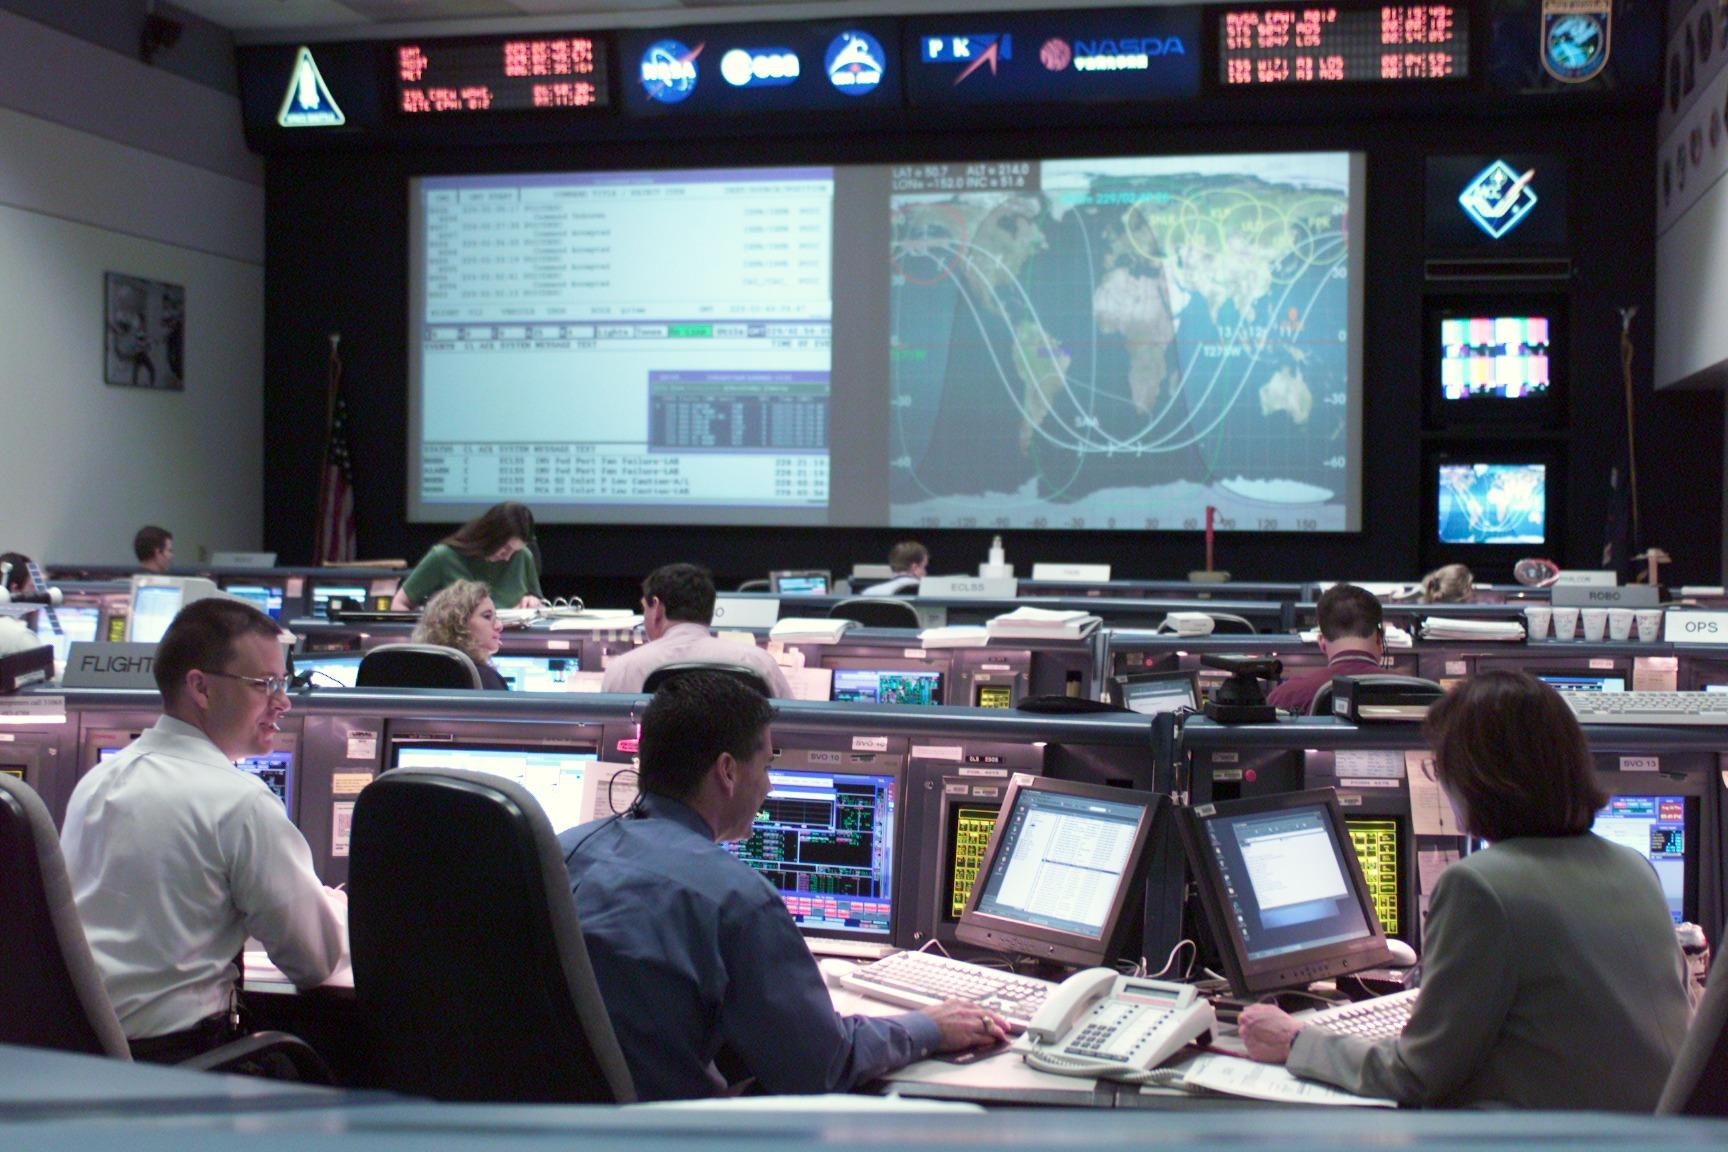 Space Station Flight Control Room | NASA